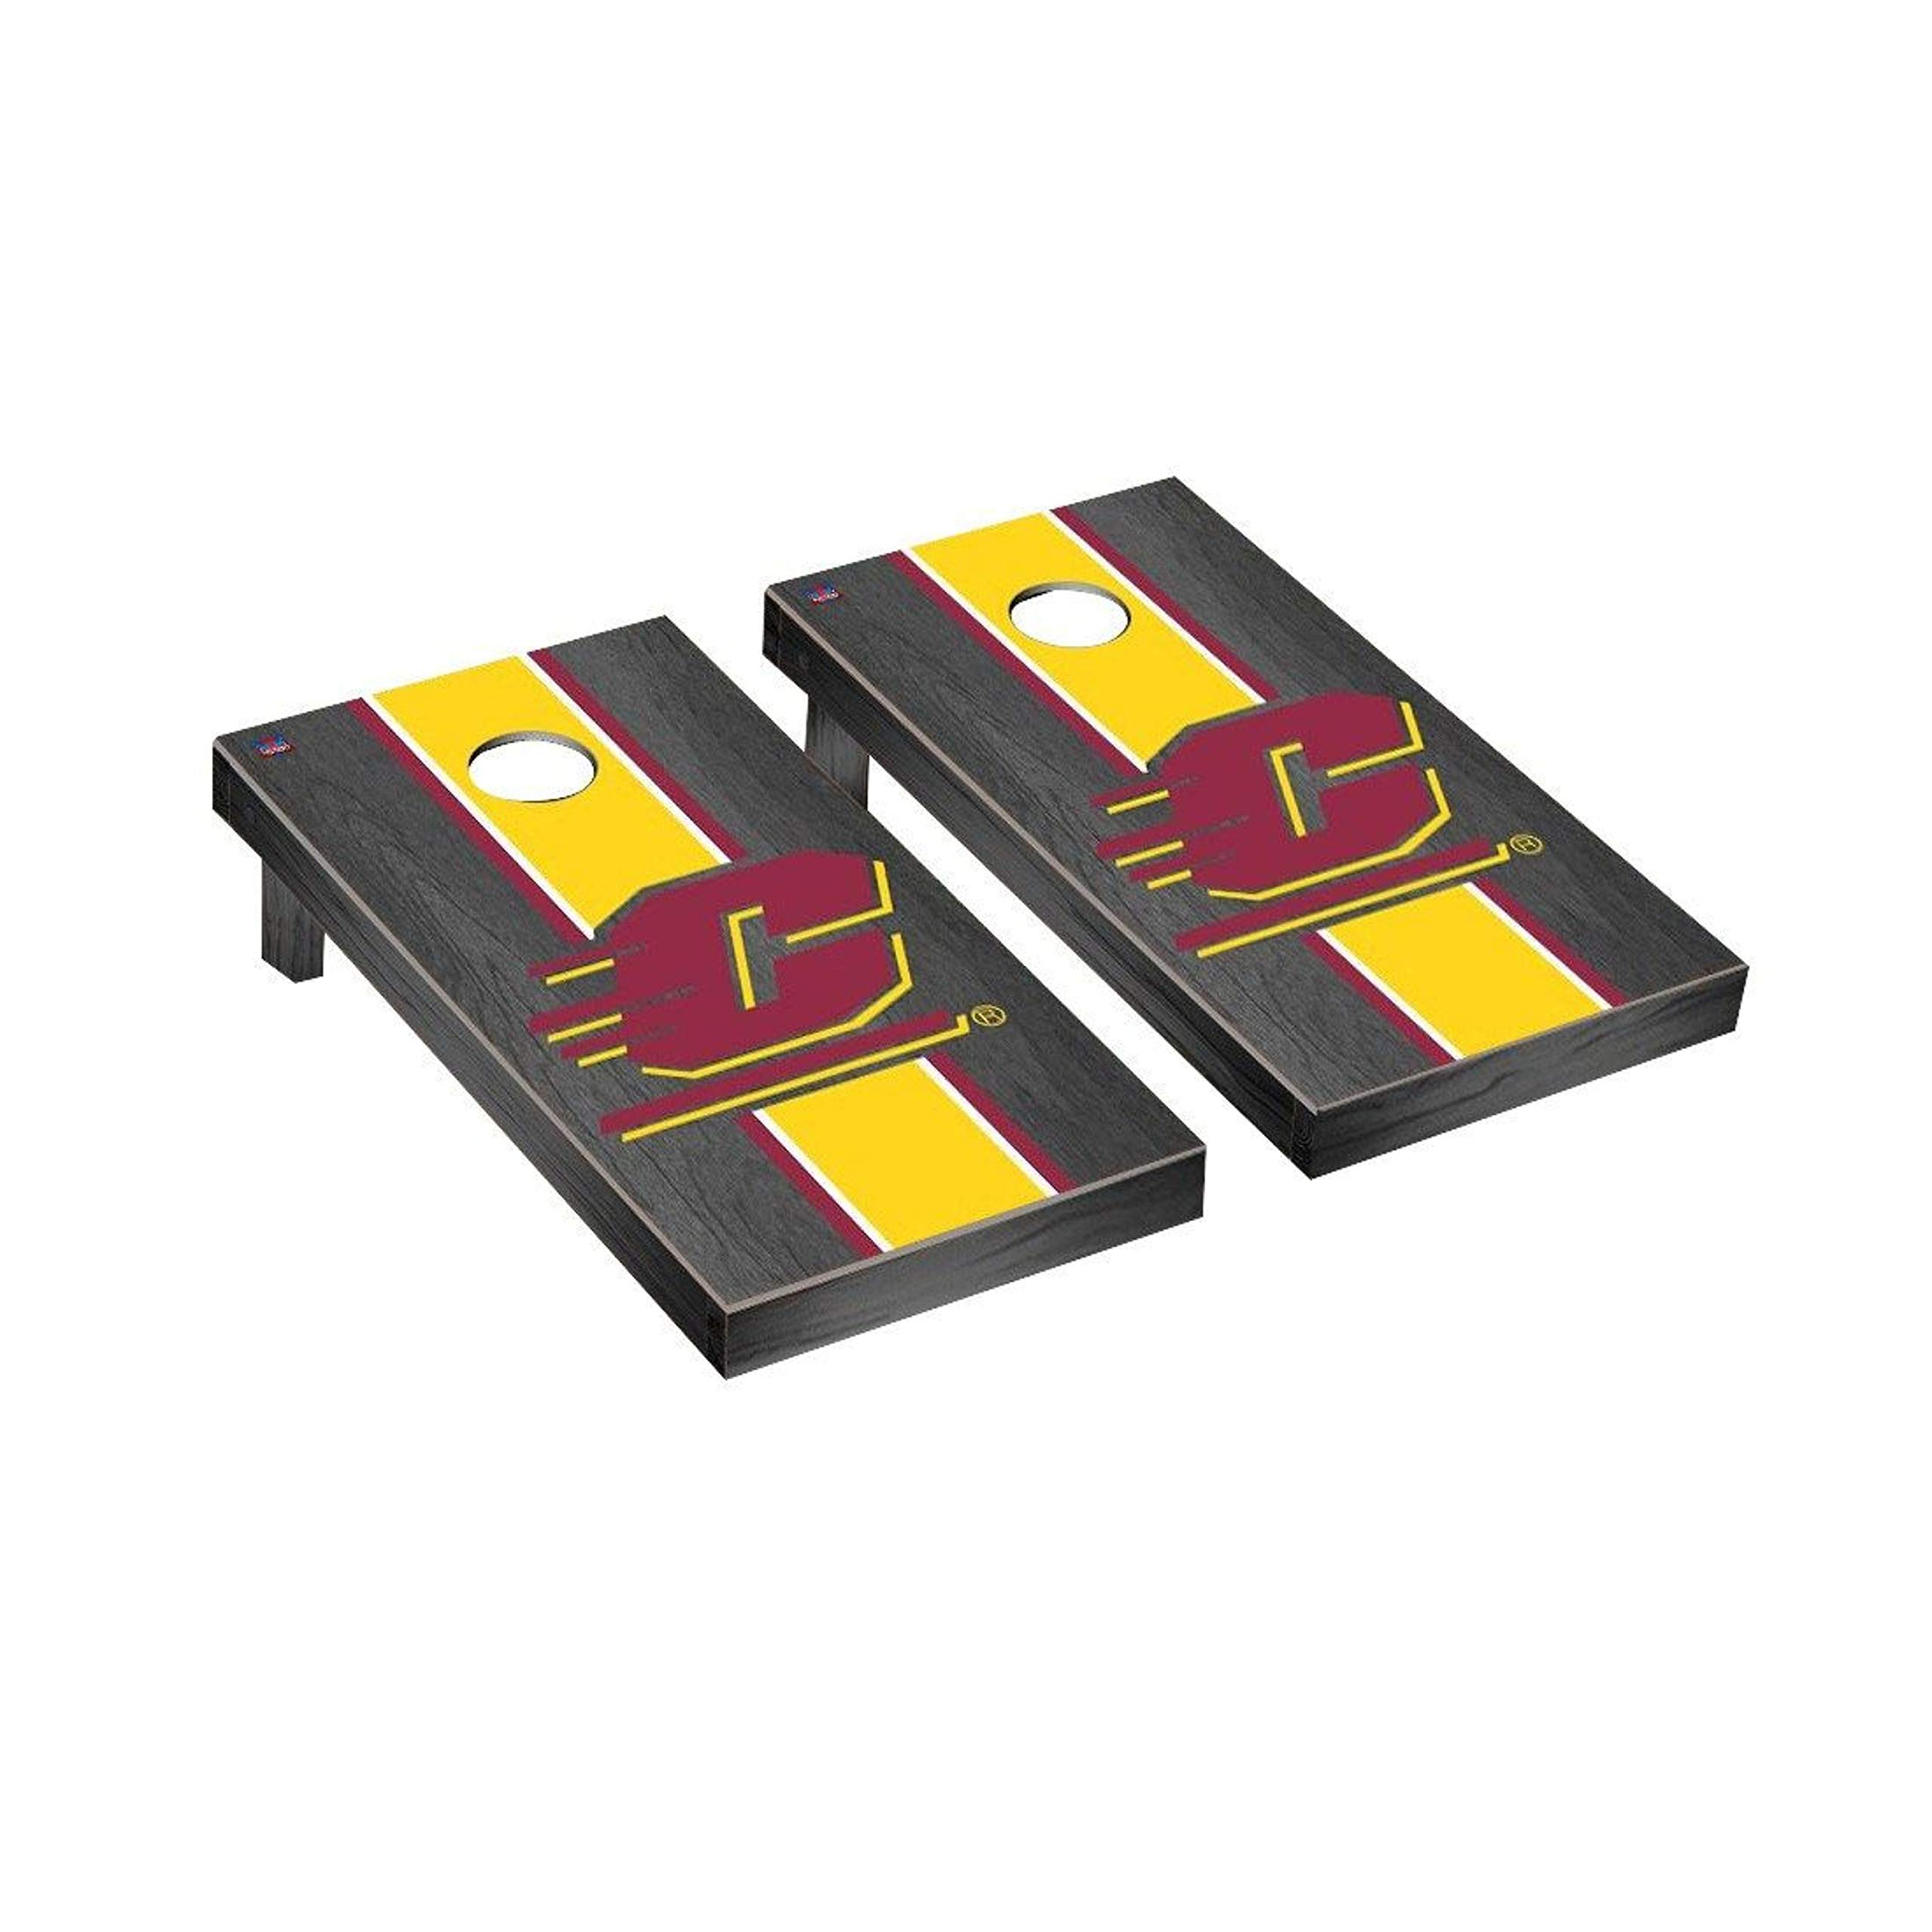 Victory Tailgate Regulation Collegiate NCAA Onyx Stained Stripe Series Cornhole Board Set - 2 Boards, 8 Bags - Central Michigan Chippewas by Victory Tailgate